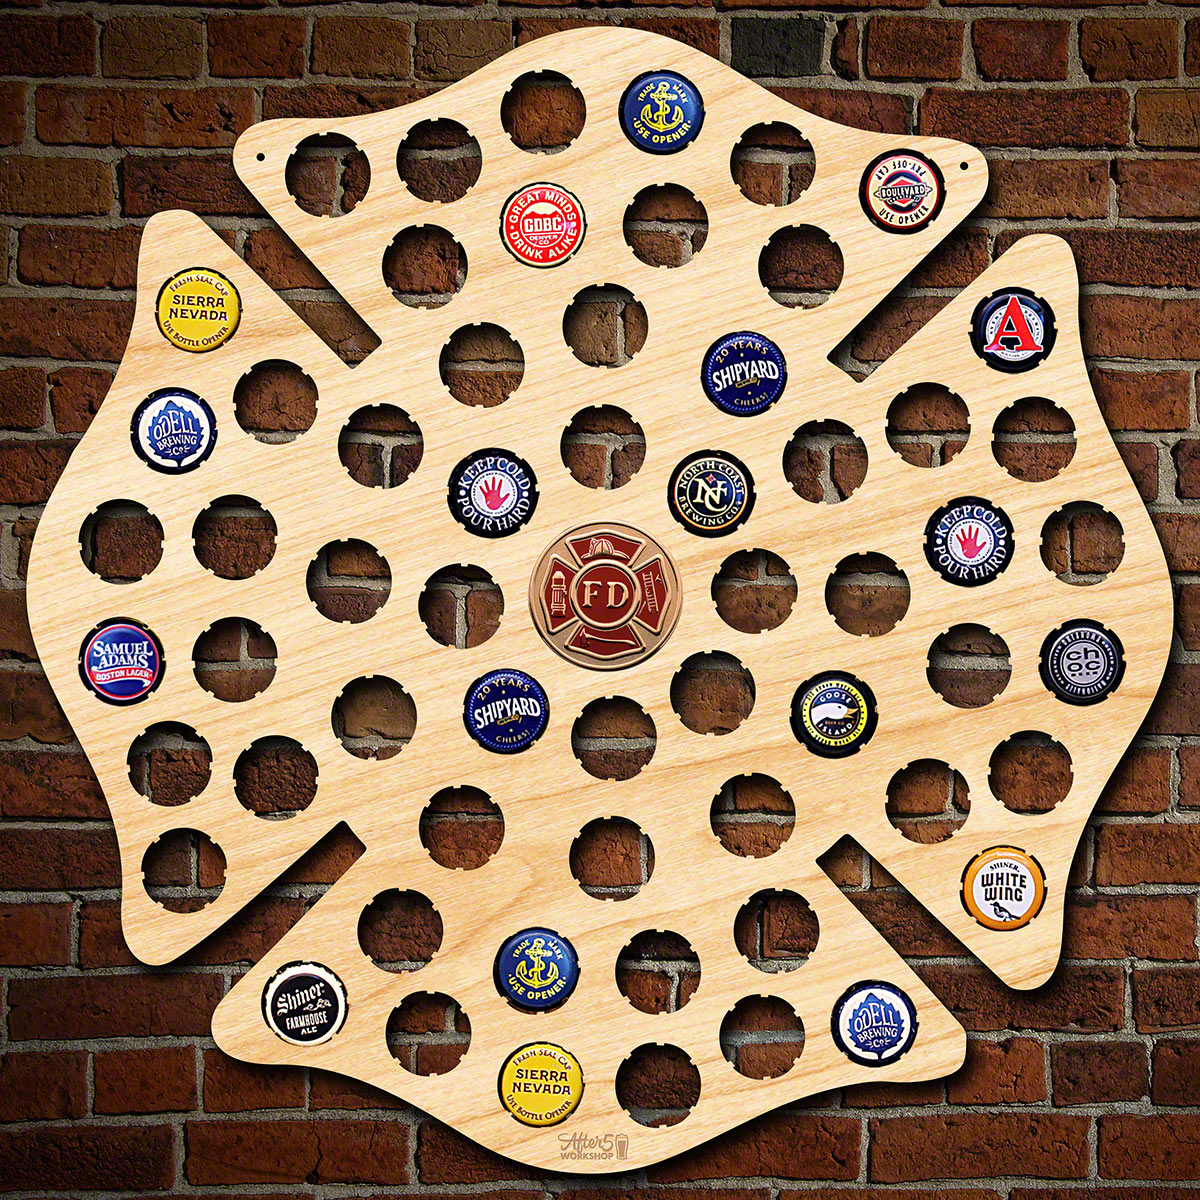 Firefighter-Maltese-Cross-Beer-Cap-Map-with-Color-Medallion